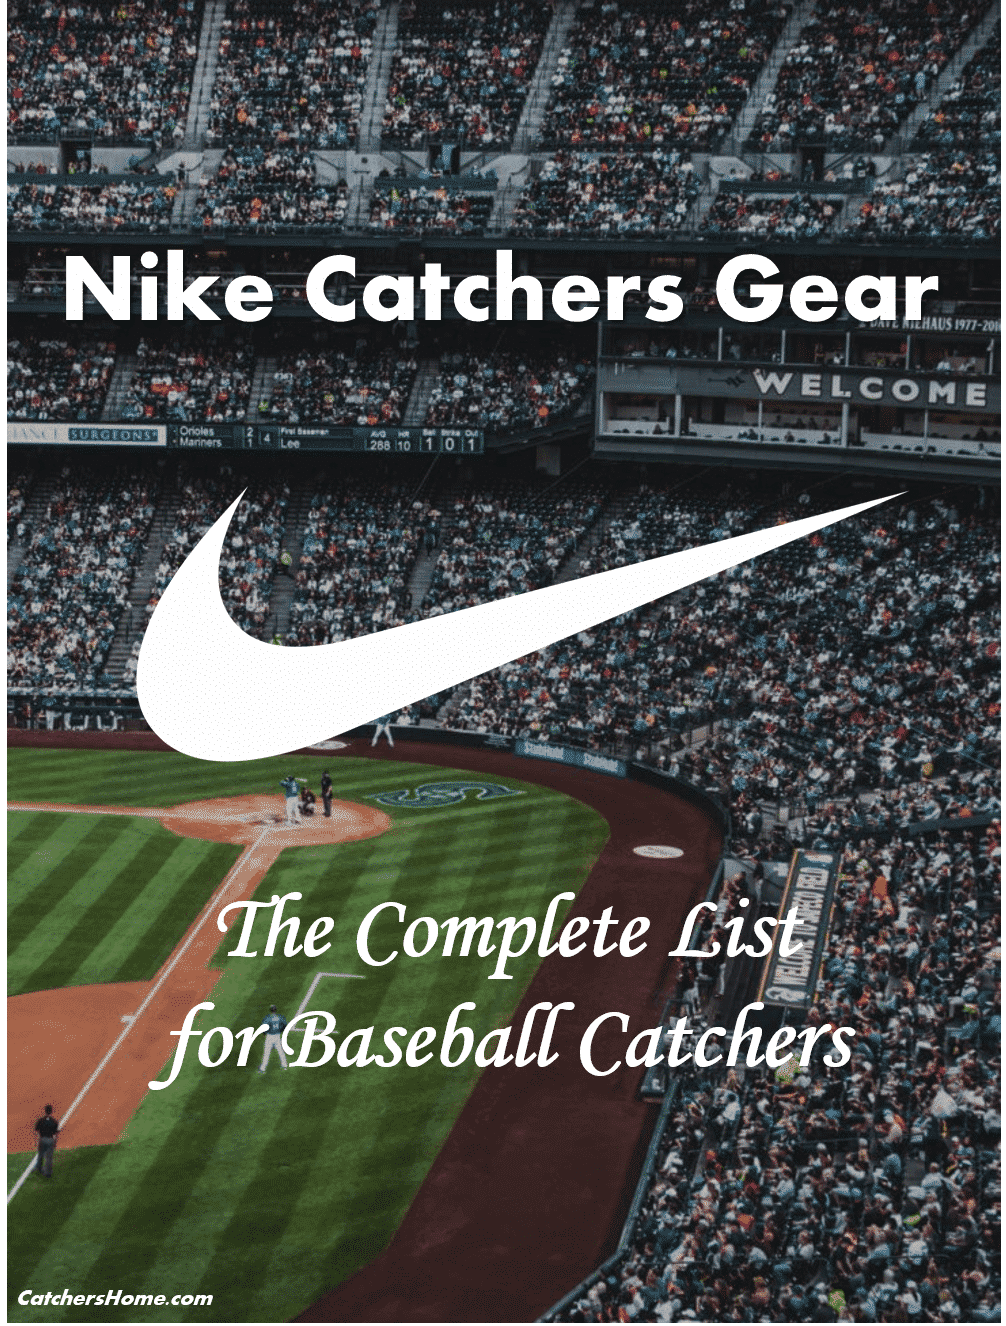 ce6401c20929 Nike Catchers Gear  The Complete and Comprehensive List for Catchers